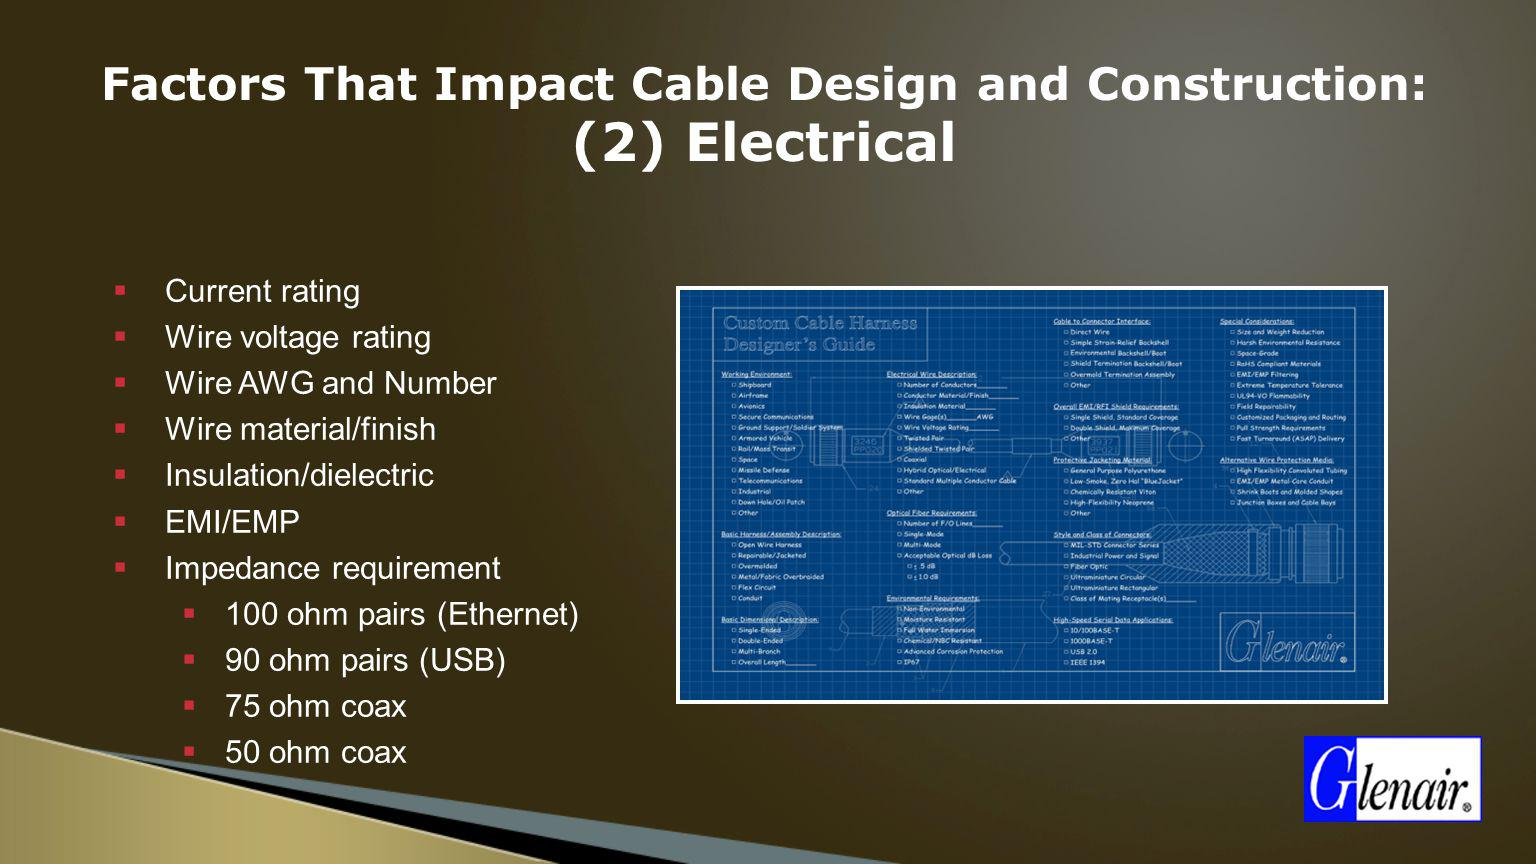 Factors That Impact Cable Design and Construction: (2) Electrical